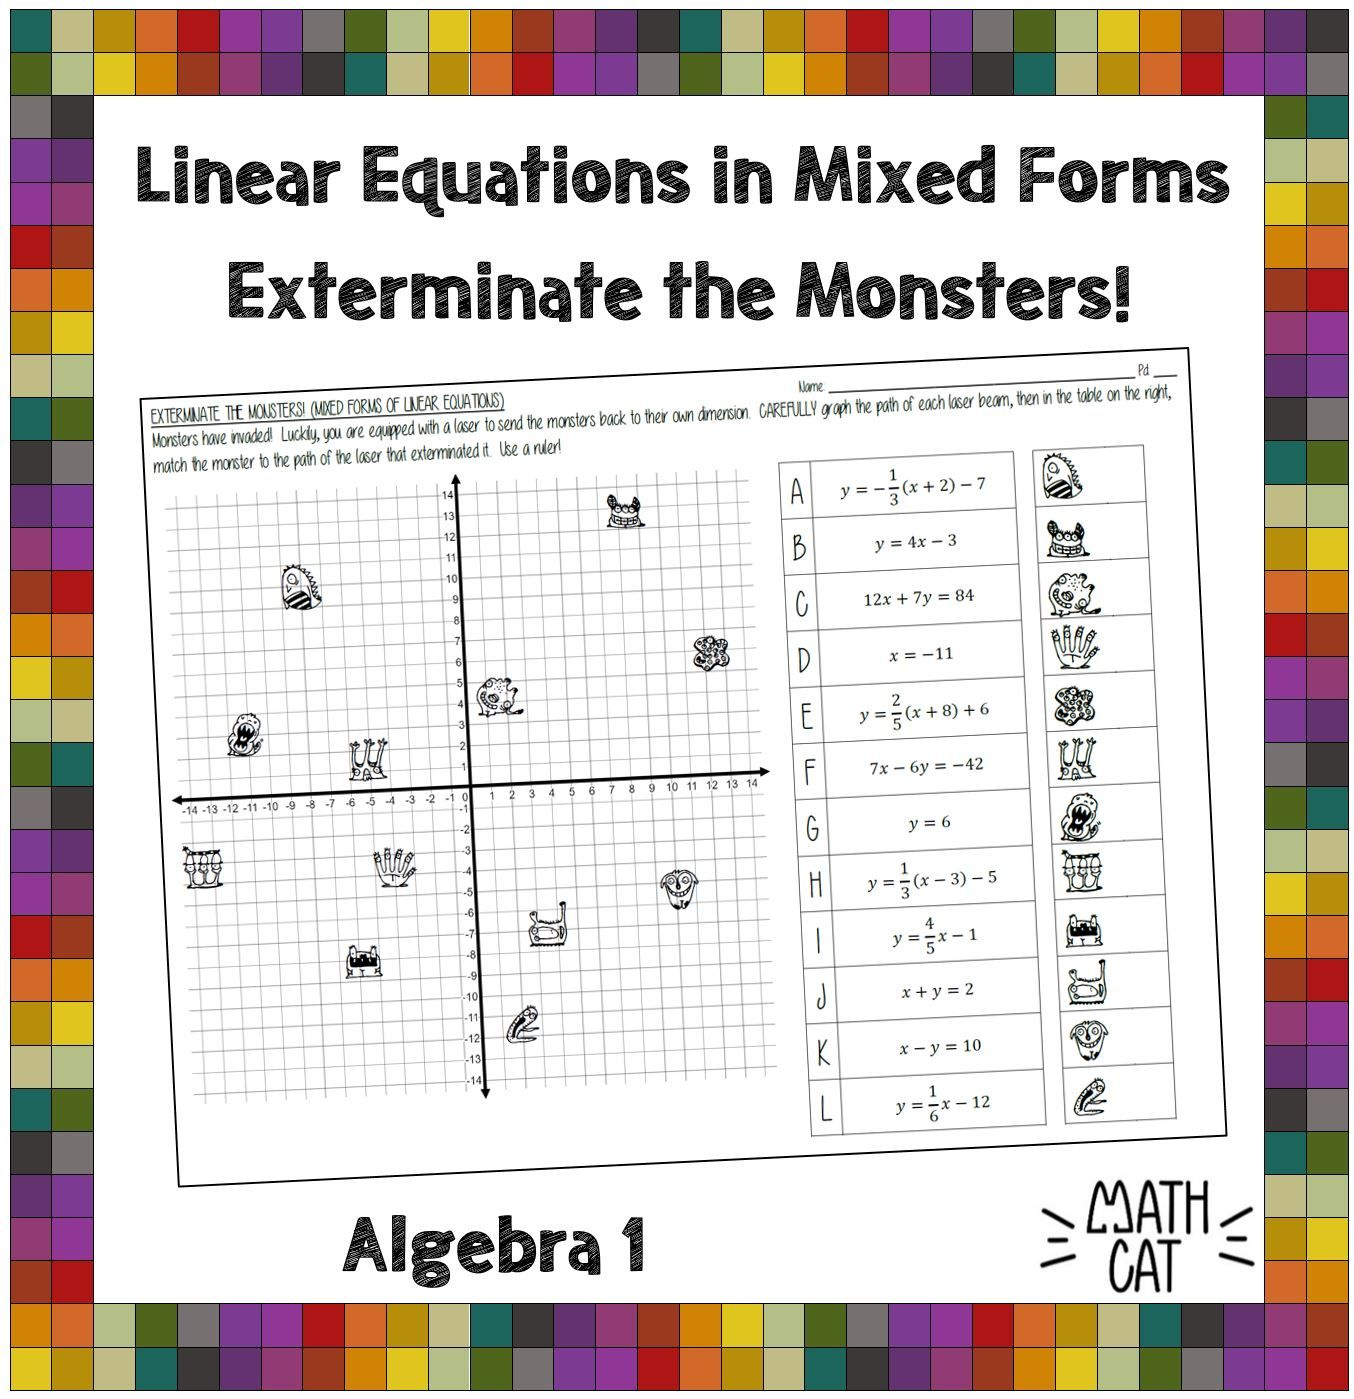 Exterminate The Monsters Graphing Linear Equations In Mixed Forms Graphing Linear Equations Graphing Activities Linear Function [ 1399 x 1354 Pixel ]